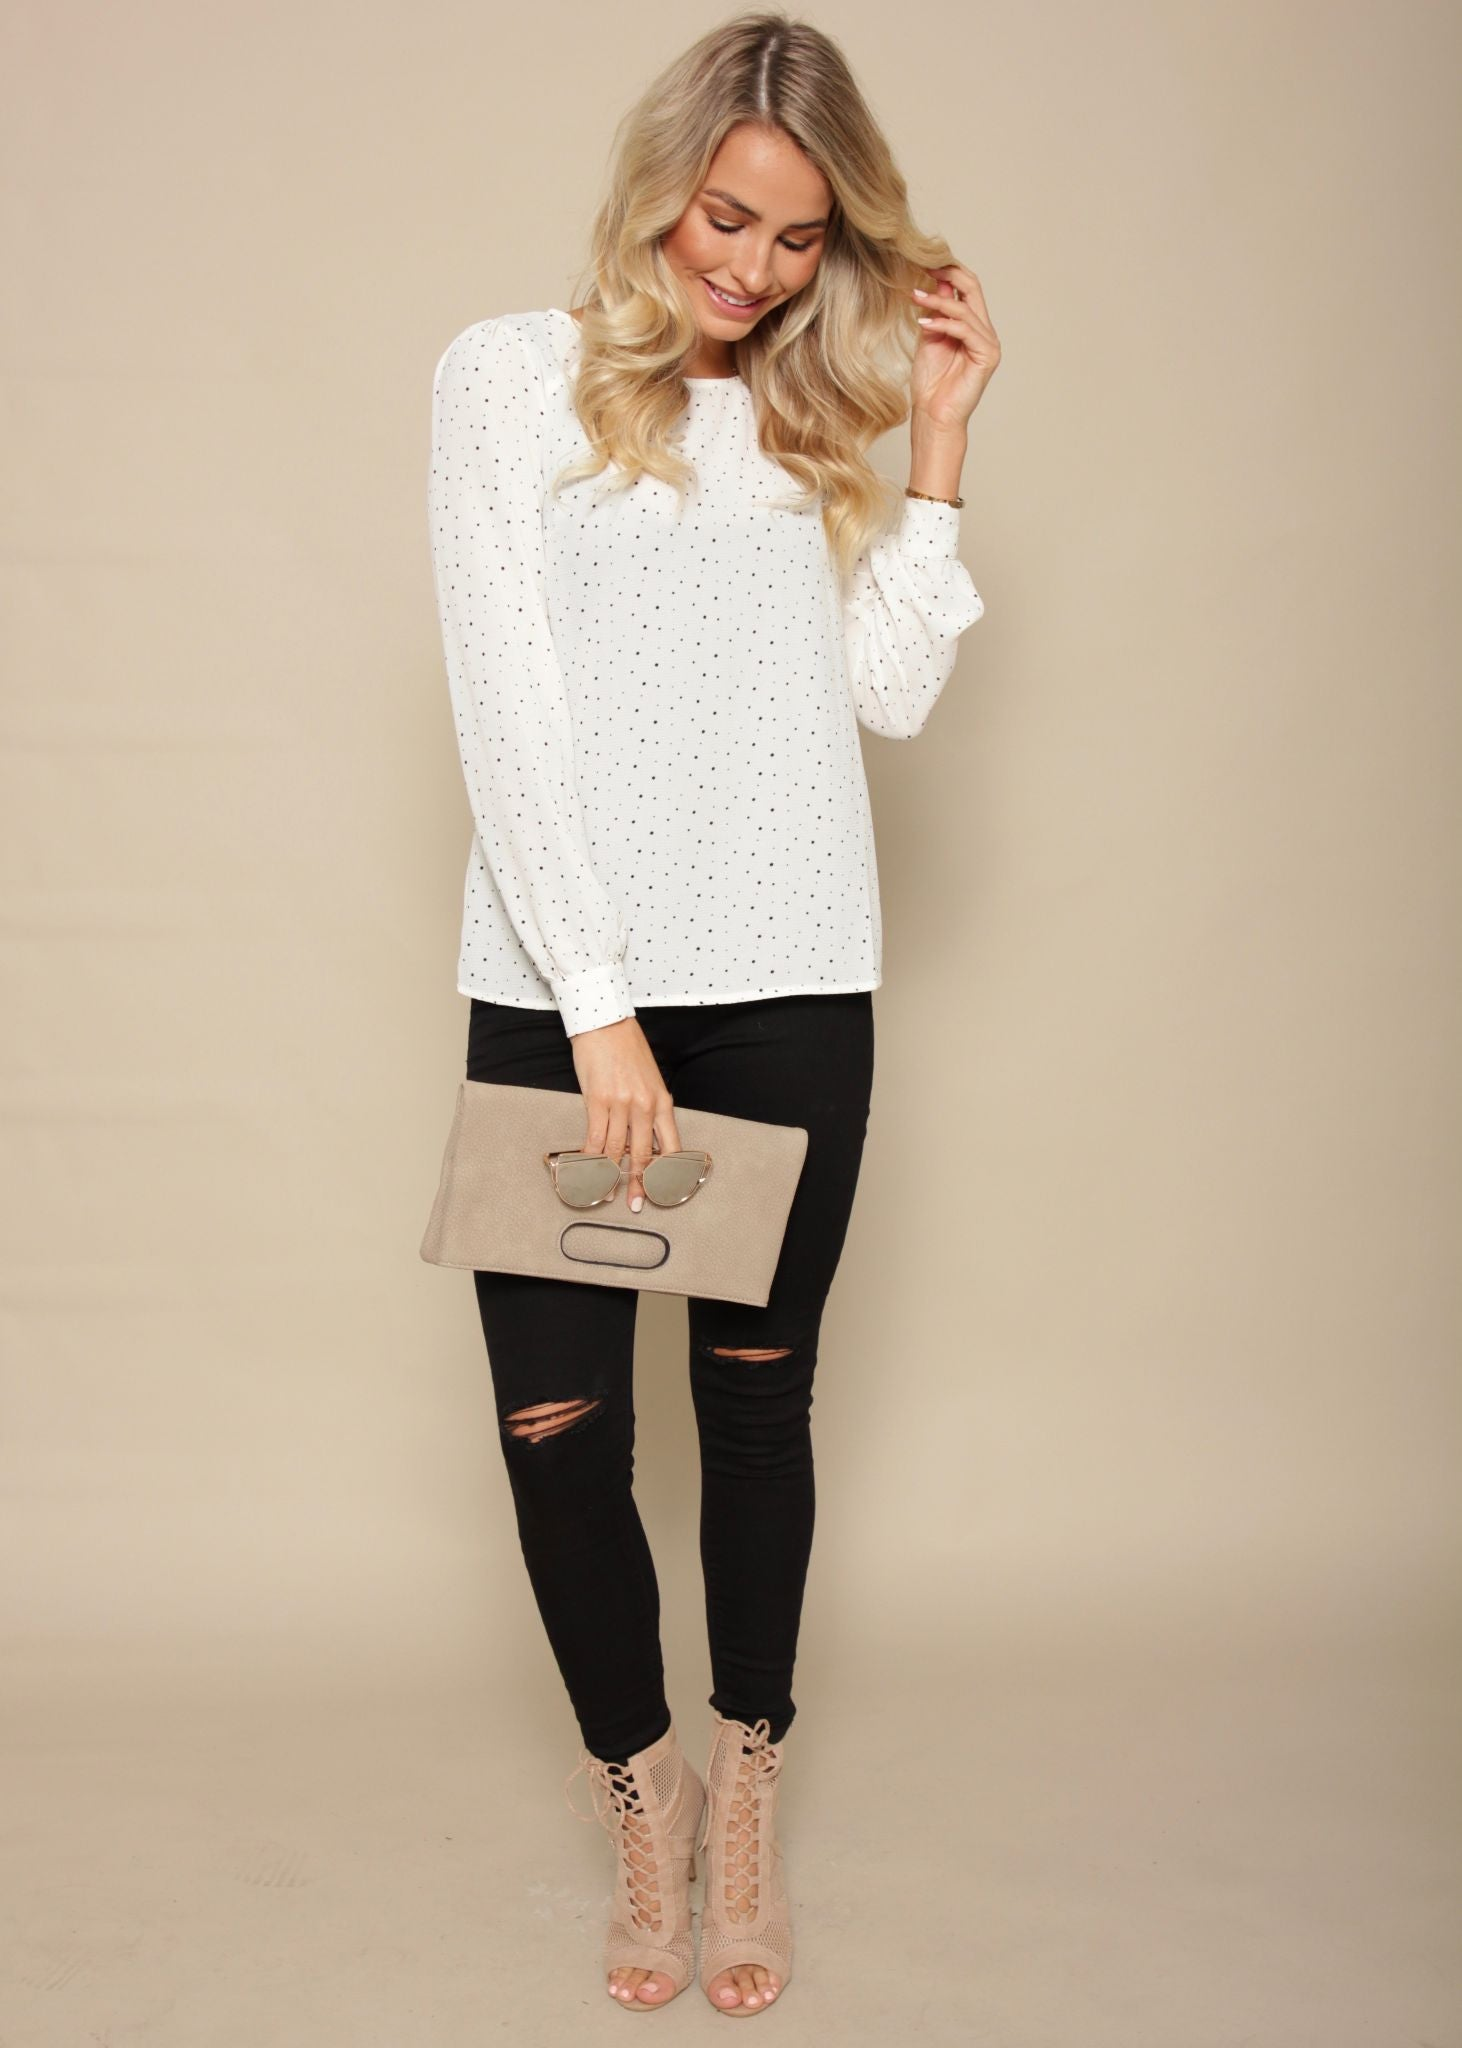 Peace Of You Blouse - White Polka